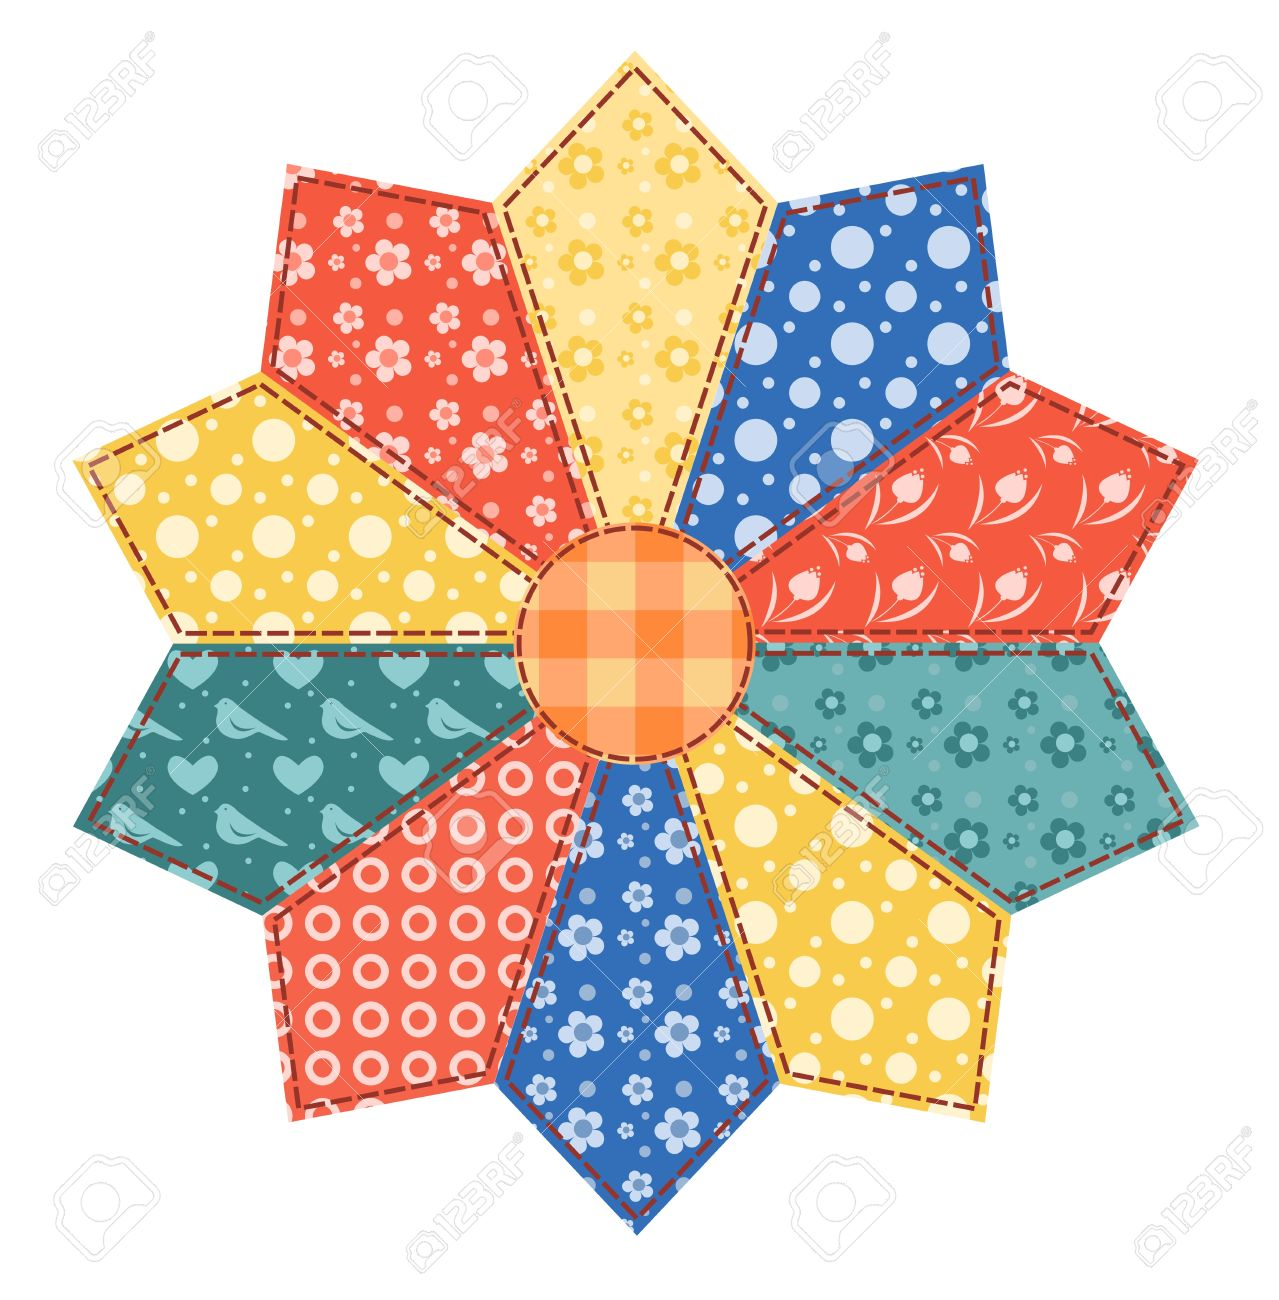 Free Clipart Quilt.